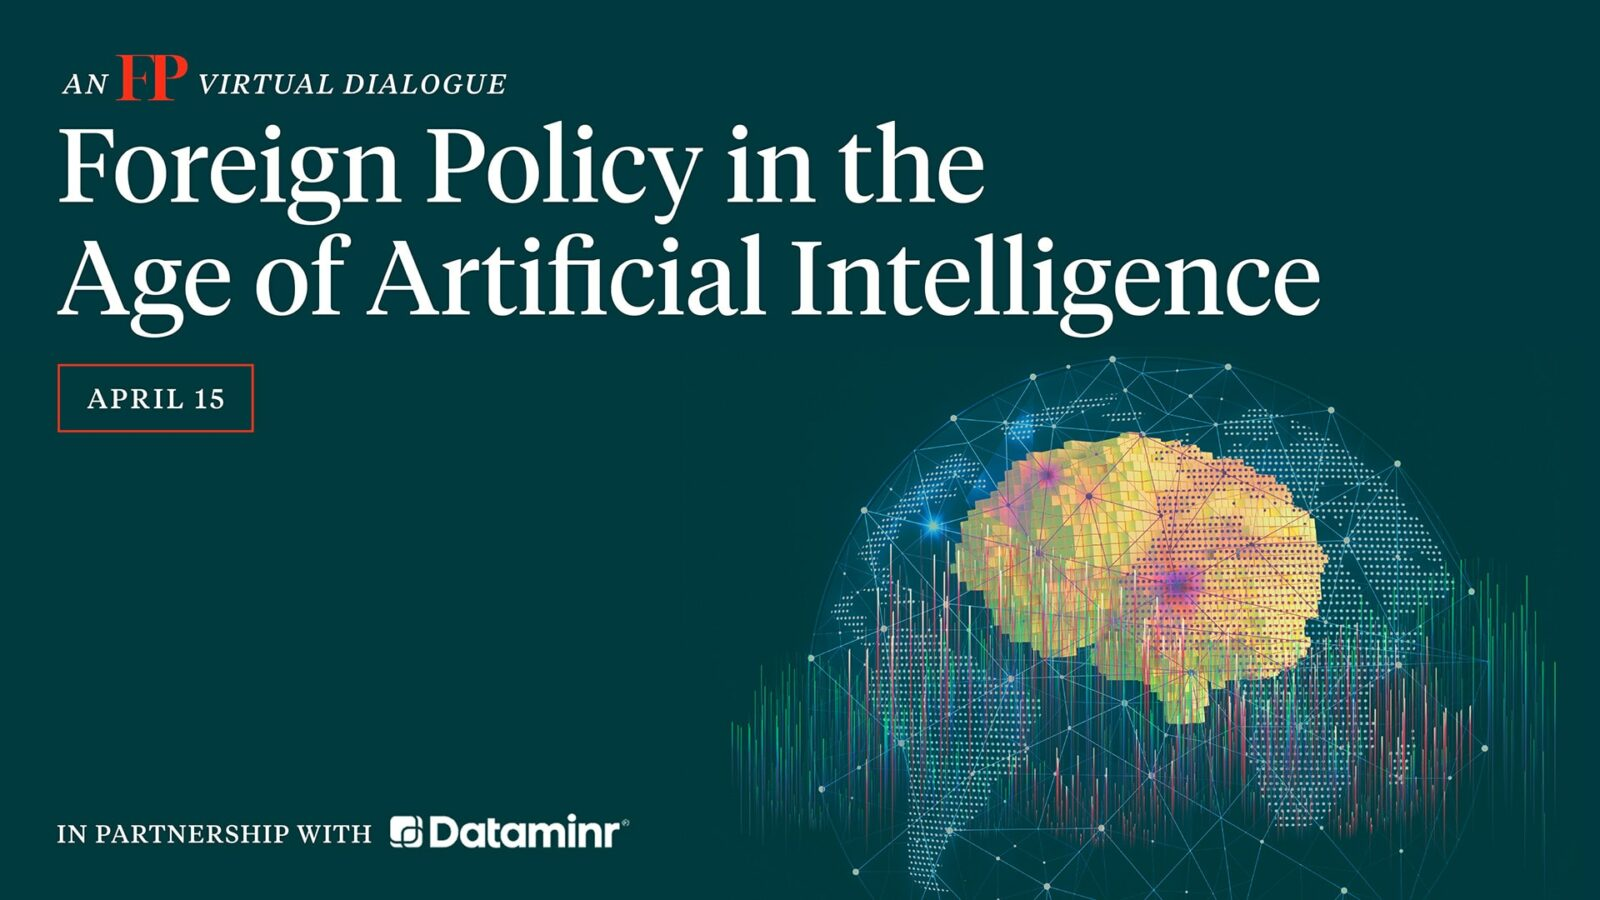 FP Virtual Dialogue: Foreign Policy in the Age of Artificial Intelligence 2